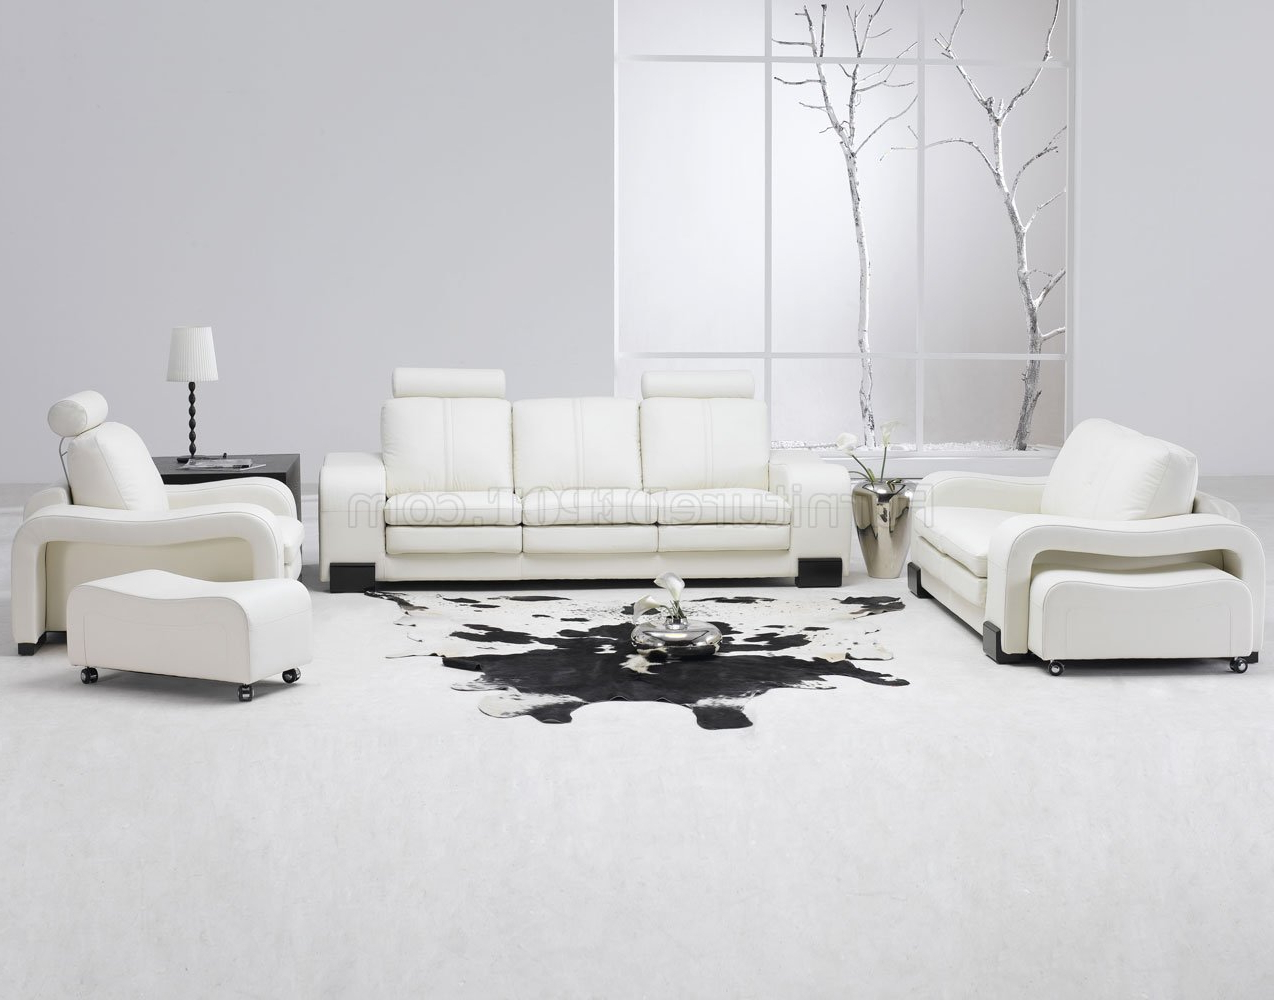 White Leather 4Pc Modern Sofa, Loveseat, Chair & Couch For Well Known 4Pc Beckett Contemporary Sectional Sofas And Ottoman Sets (View 9 of 25)